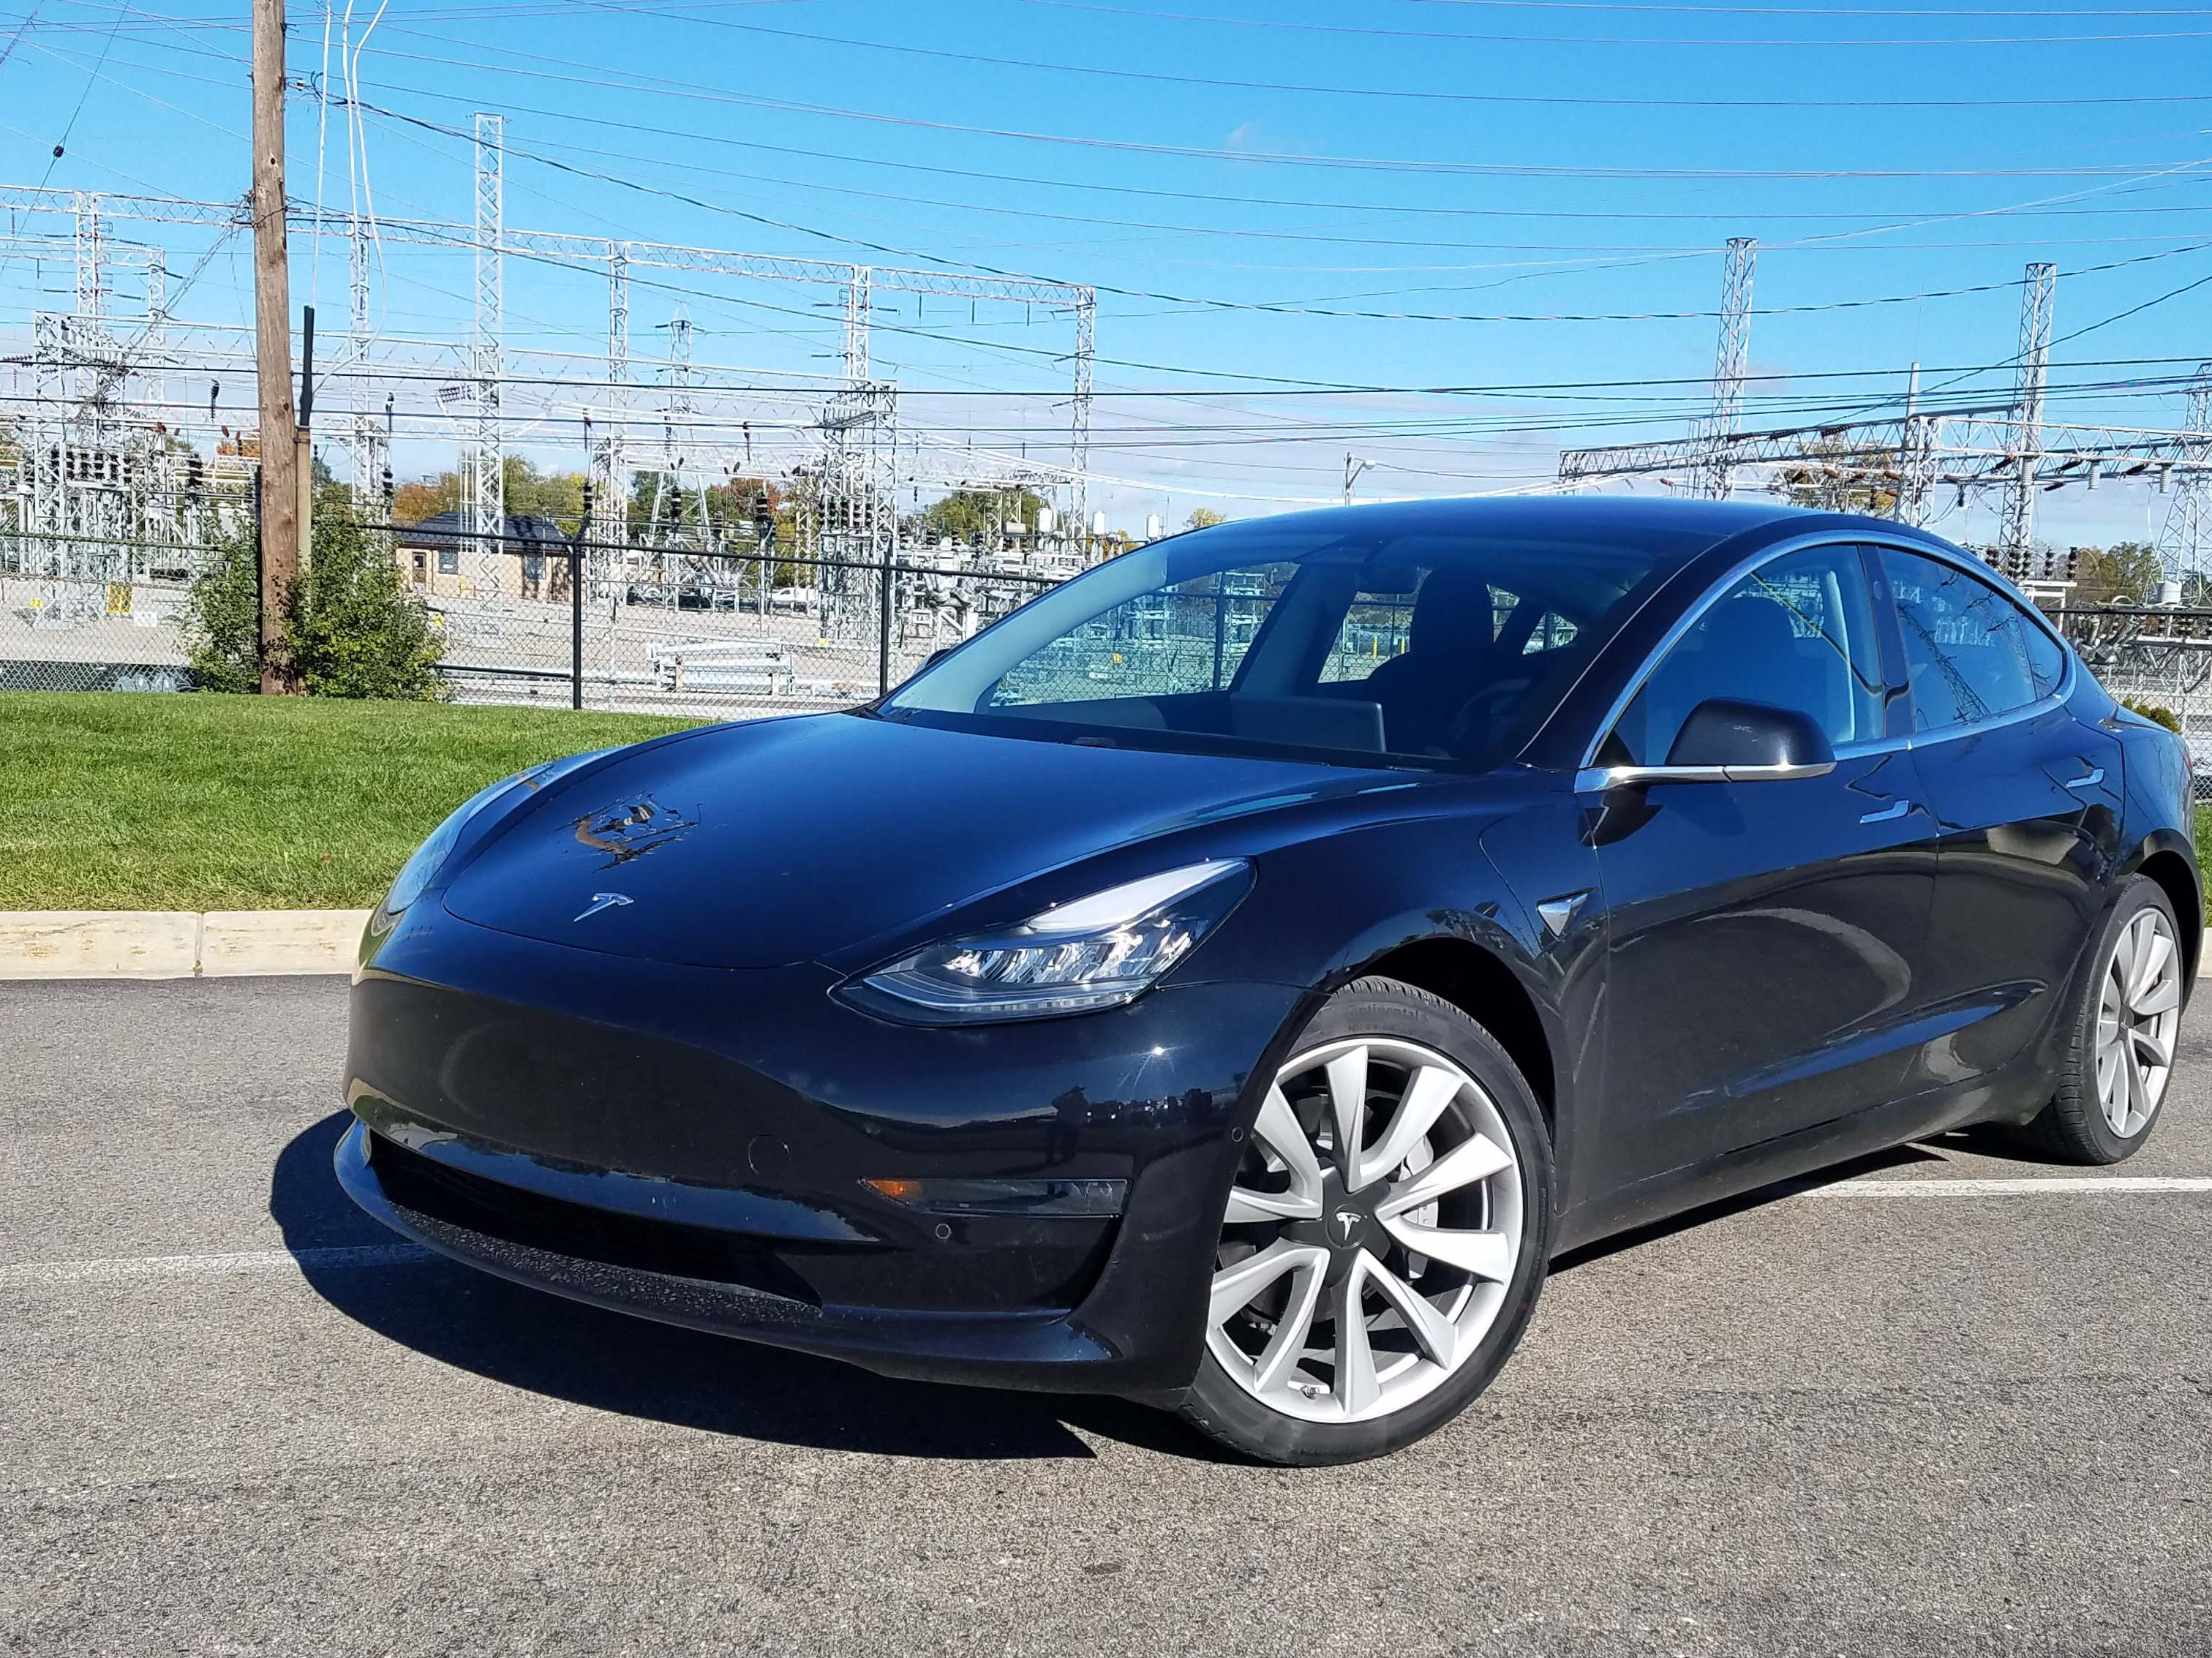 Including $1,000 and $2,500 deposits, this RWD, 310-mile range Tesla Model 3 purchased by Detroit News auto critic Henry Payne cost $57,500. He'll get $7,500 of that back on his taxes through a federal tax credit for electric vehicles.